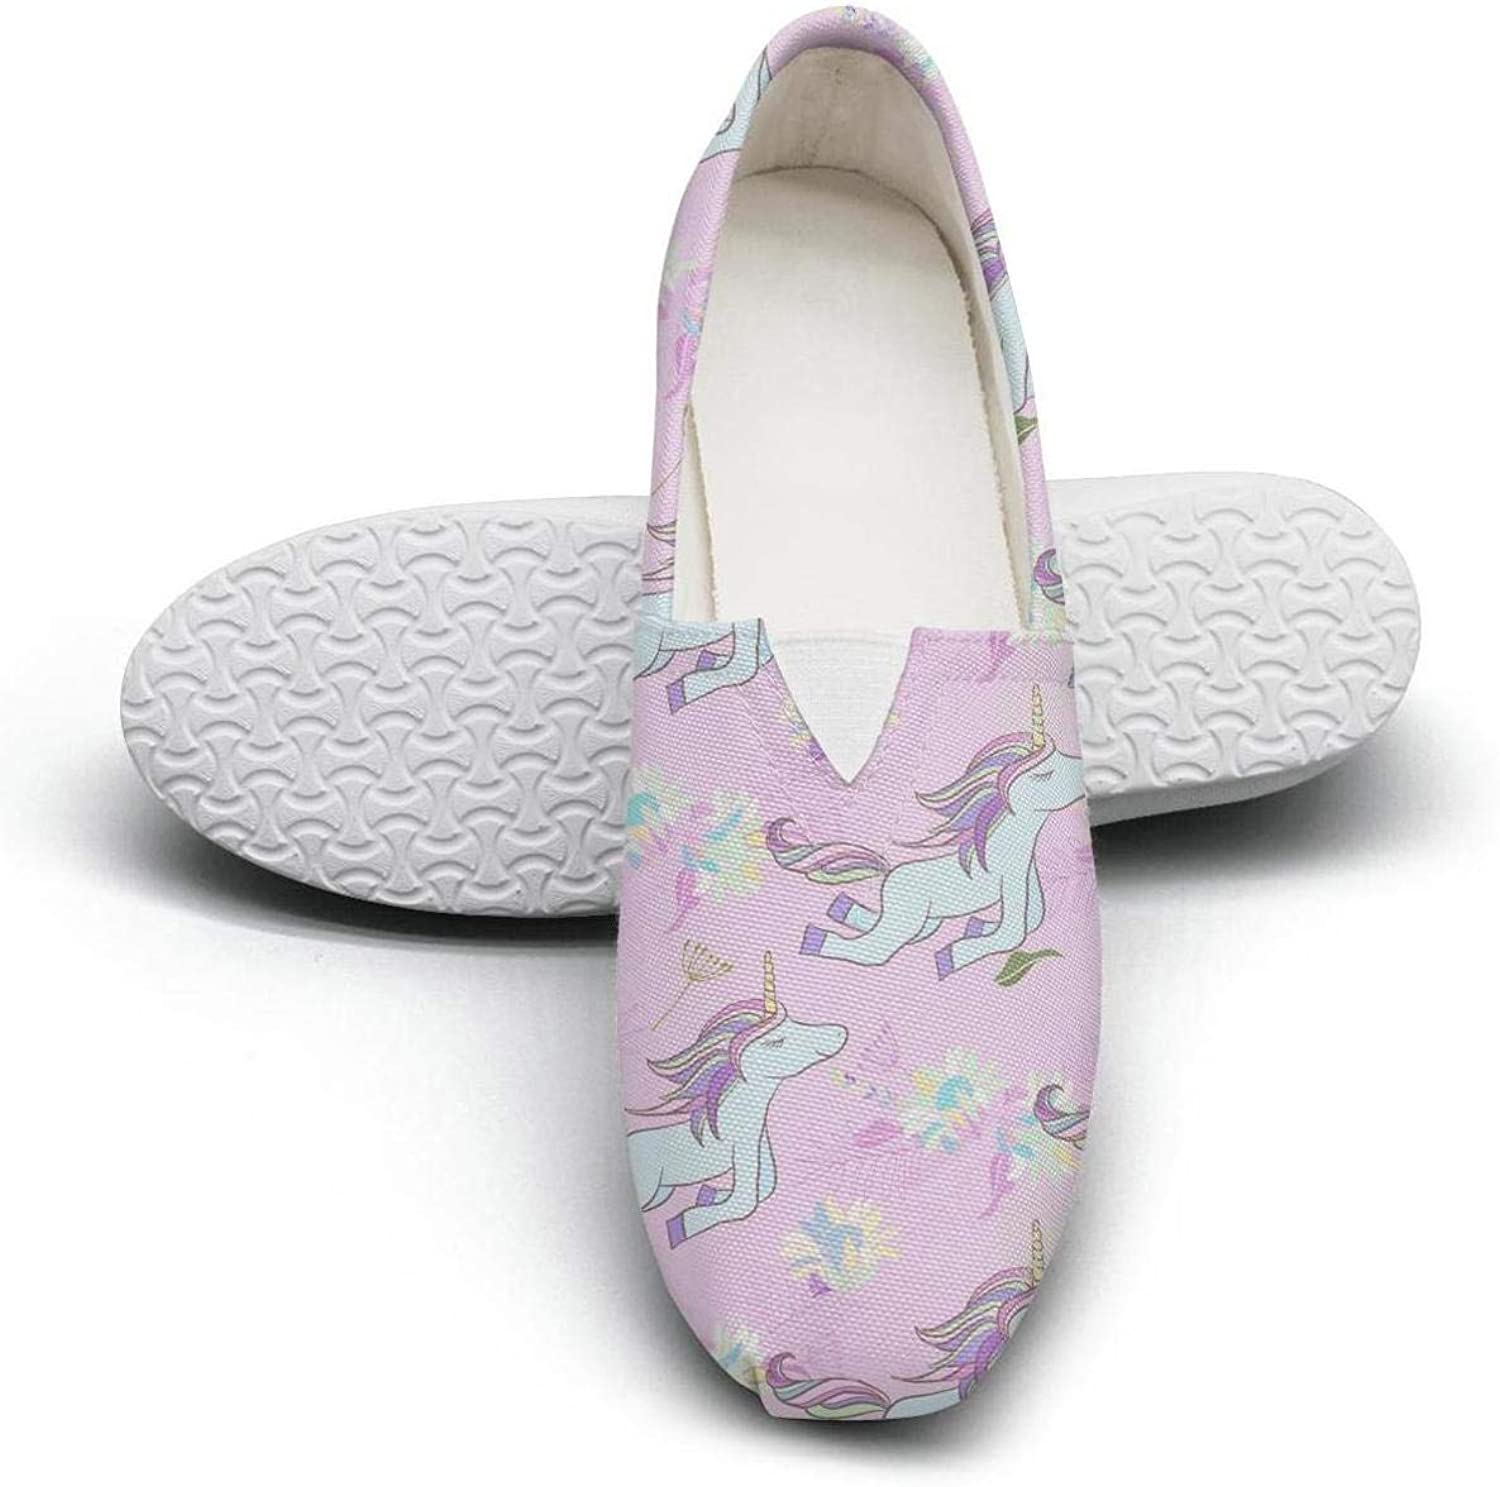 Rus Ababy Womens Walking shoes Kitty Cat Riding A Unicorn Fashion Sneakers Low Slip-on Comfortable Loafers Flat